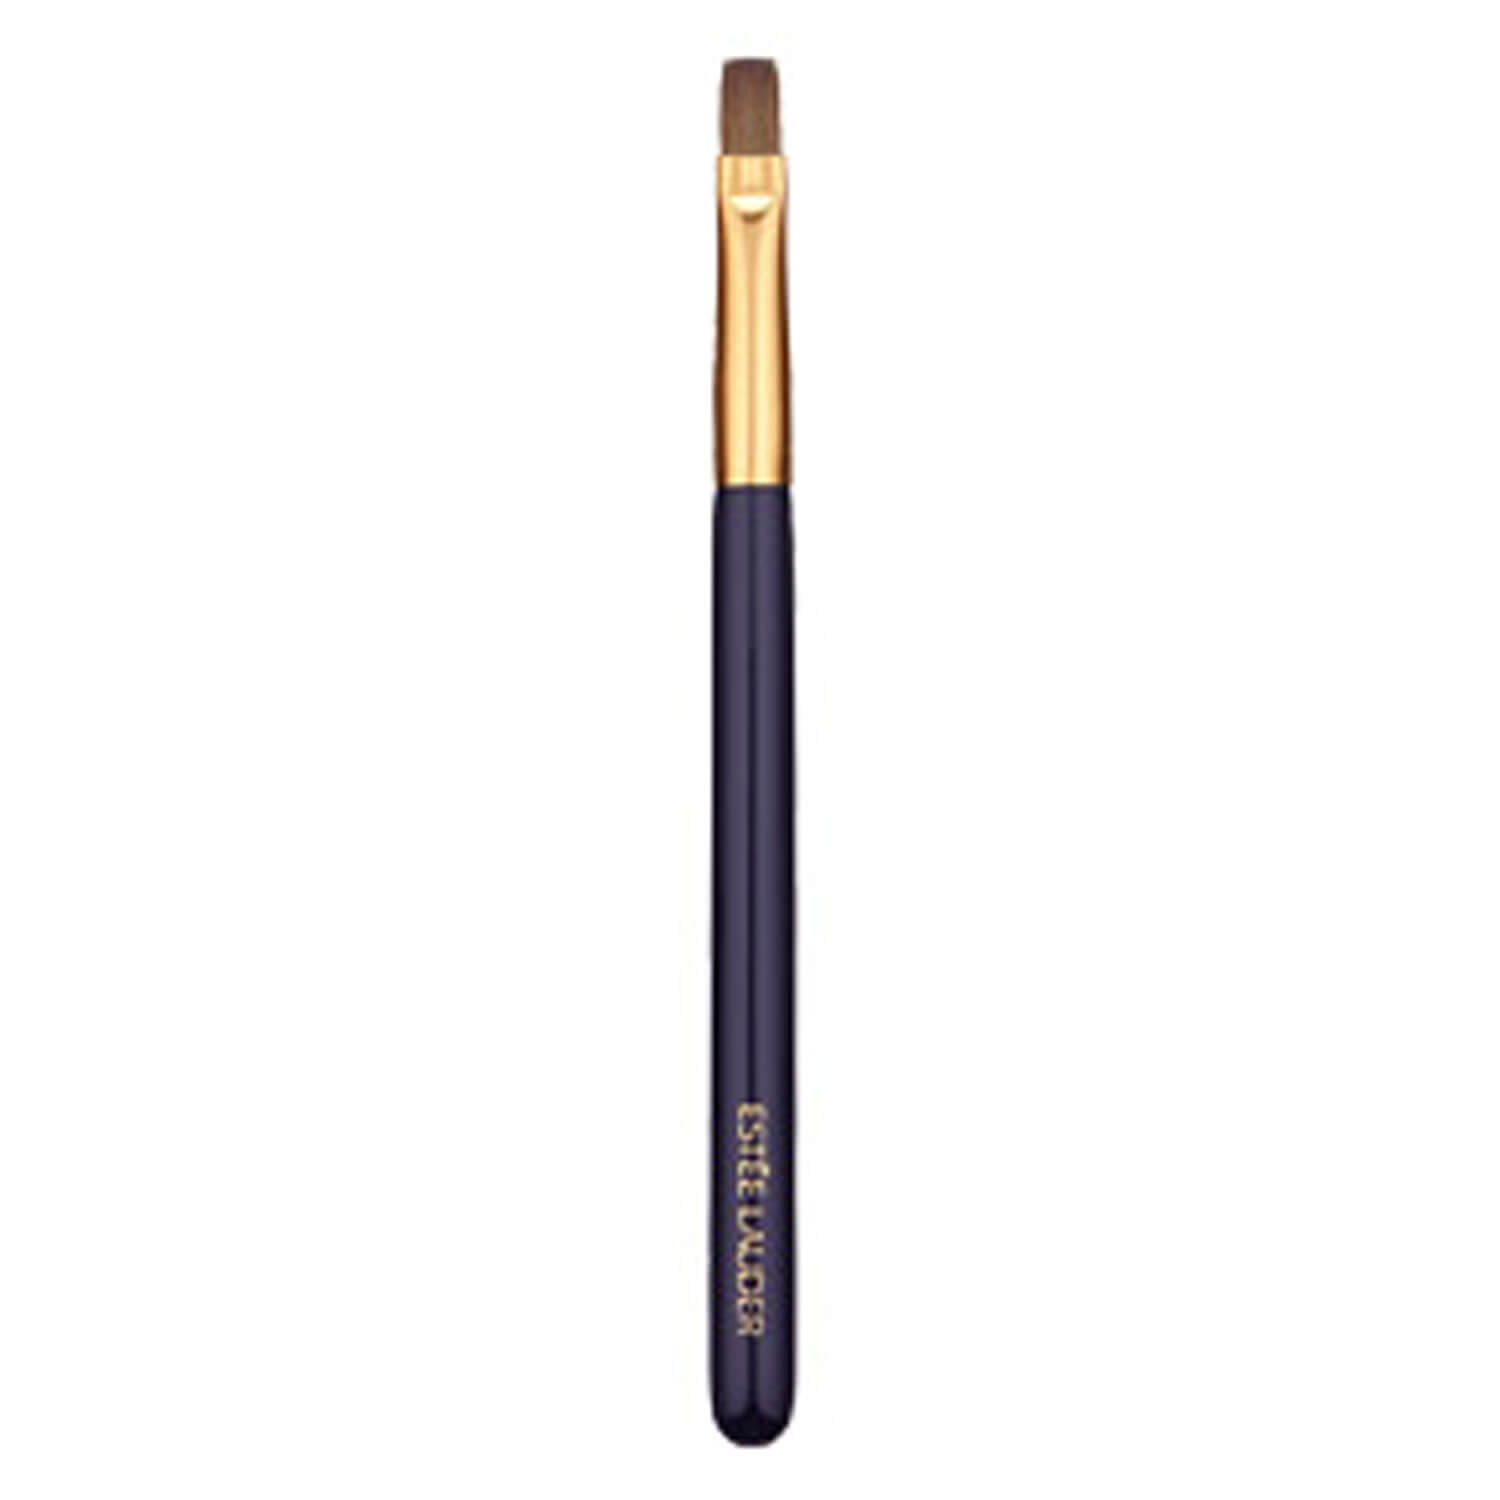 Estée Lauder Tools - Lip Brush 35